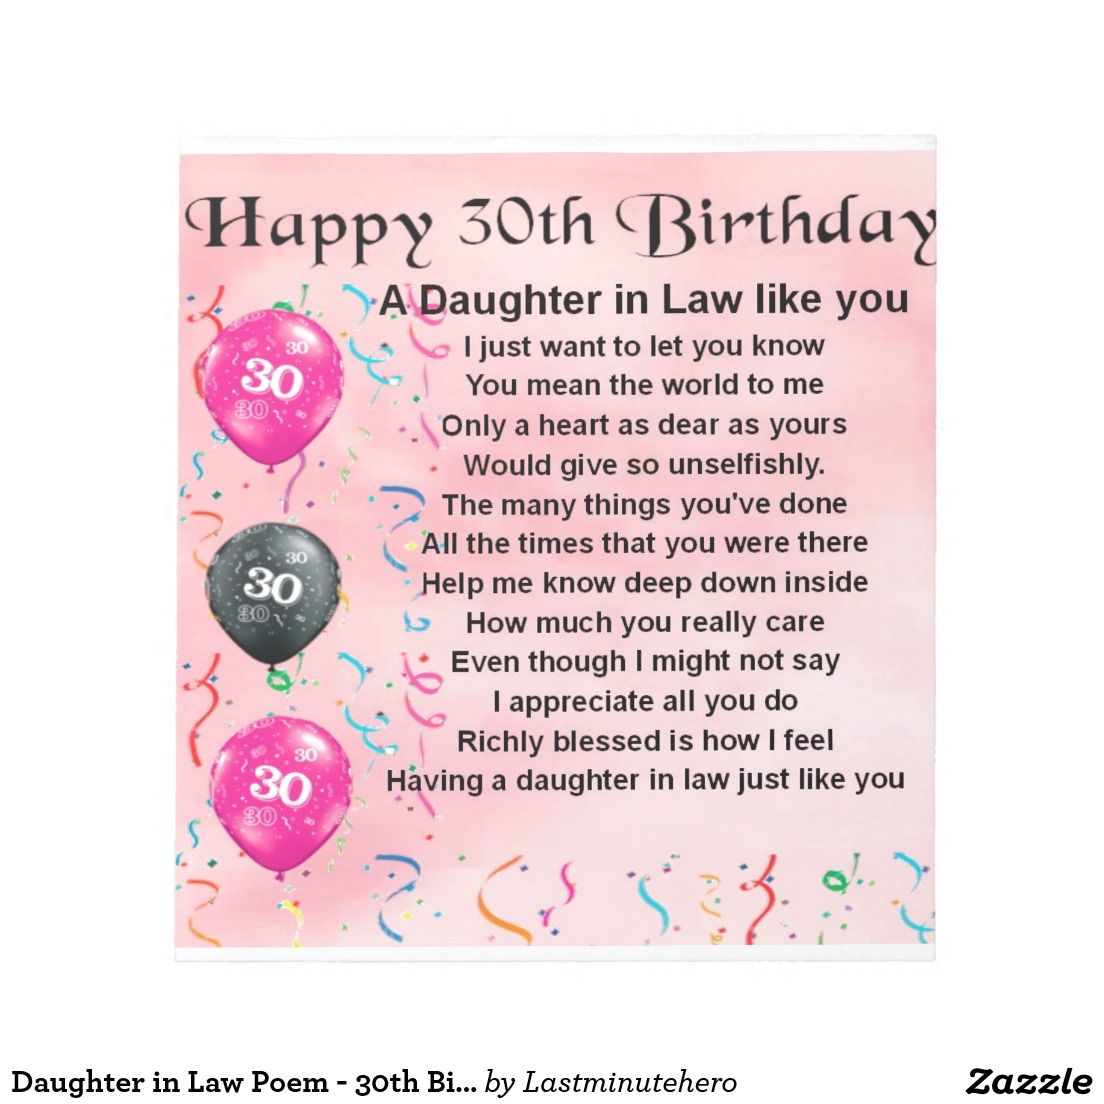 Daughter in law poem 30th birthday notepad zazzleco